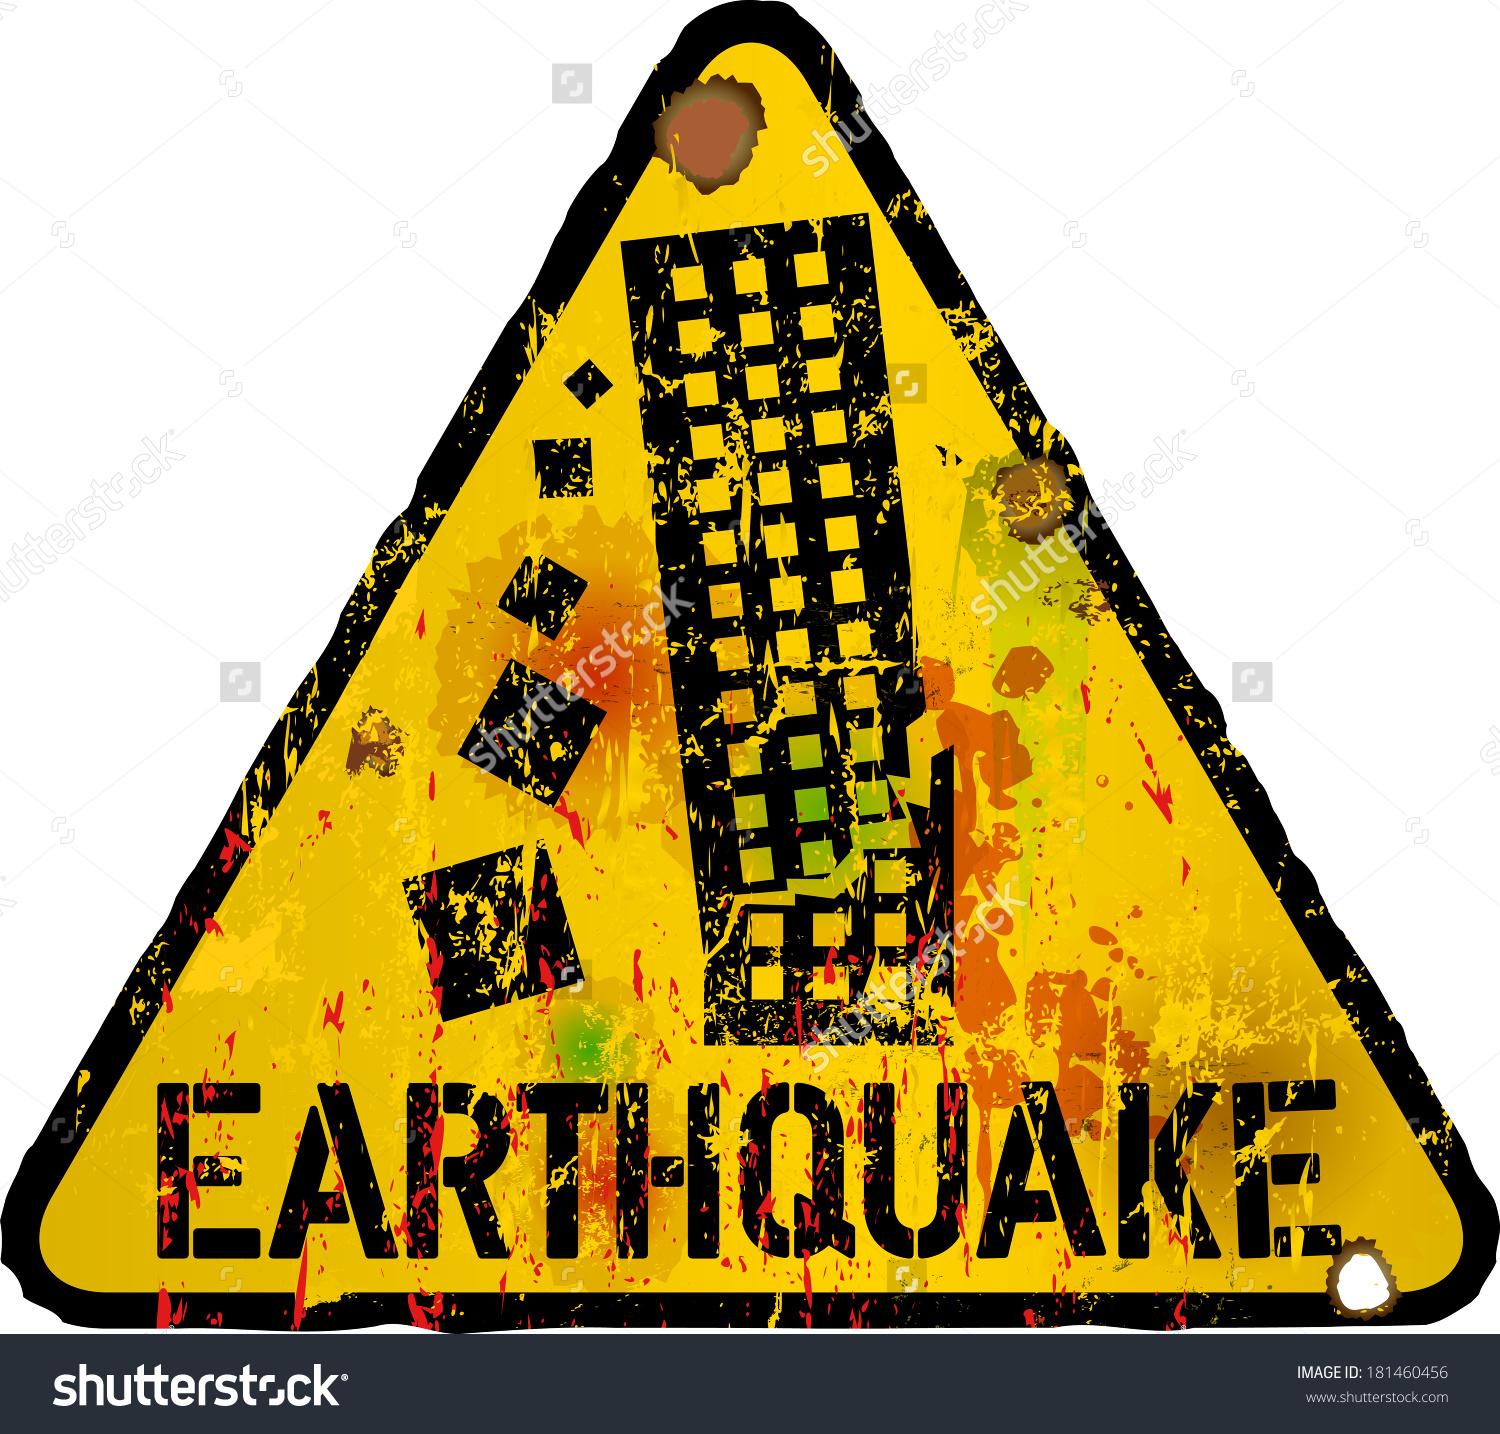 earthquake clipart free clipart panda free clipart images rh clipartpanda com earthquake cartoon images earthquake clips for kids